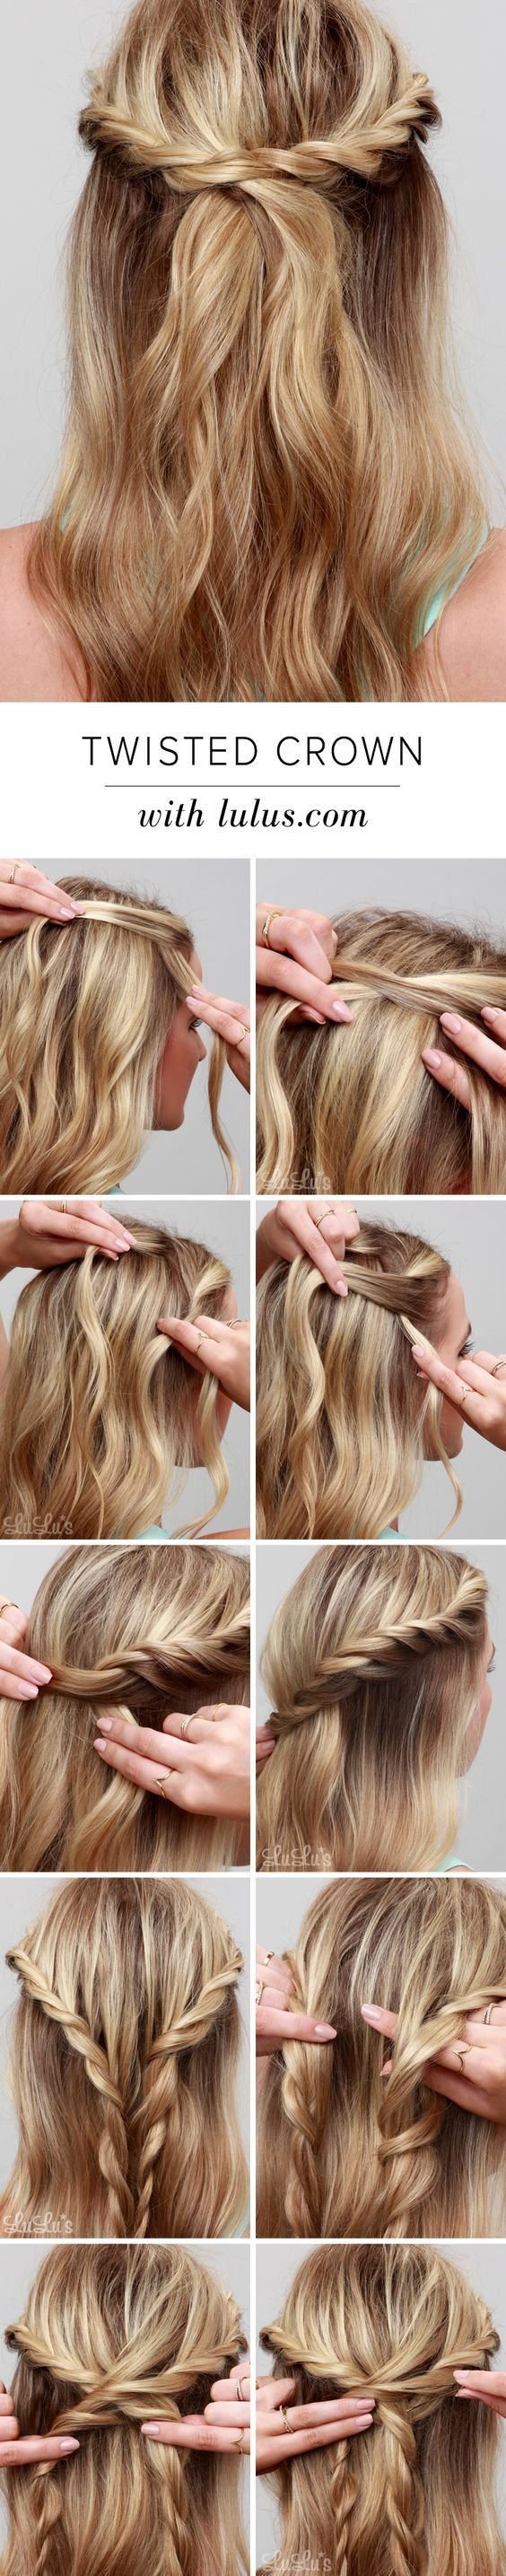 best cotton candy hair images on pinterest cute hairstyles